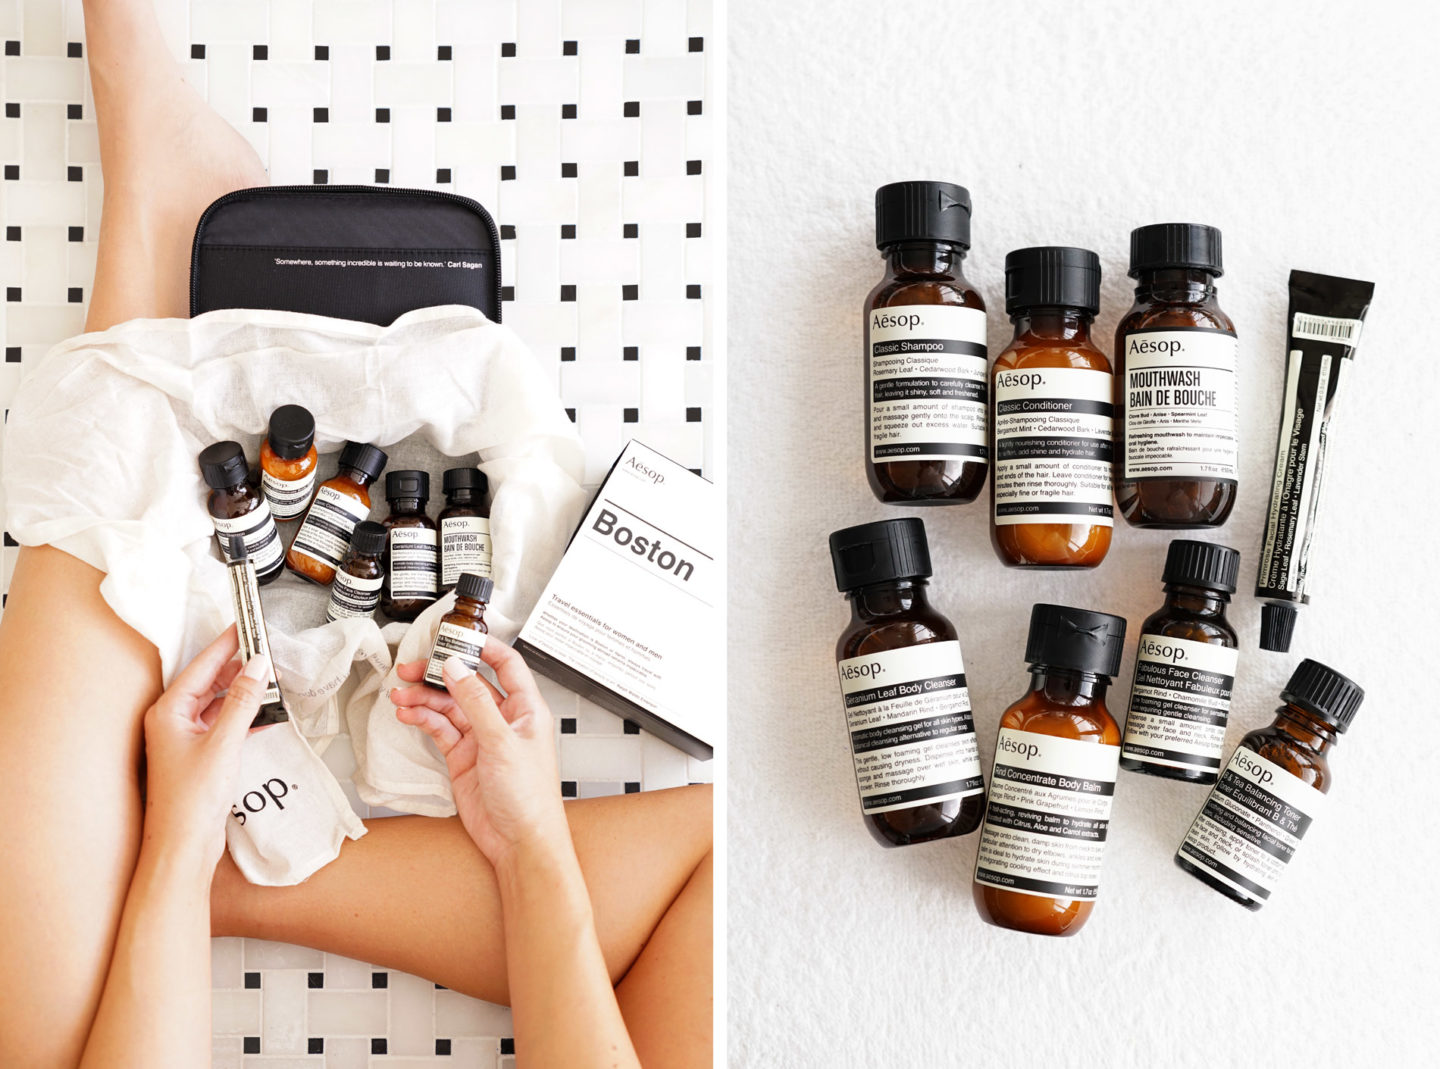 Aesop Boston Travel Skincare Set | The Beauty Look Book